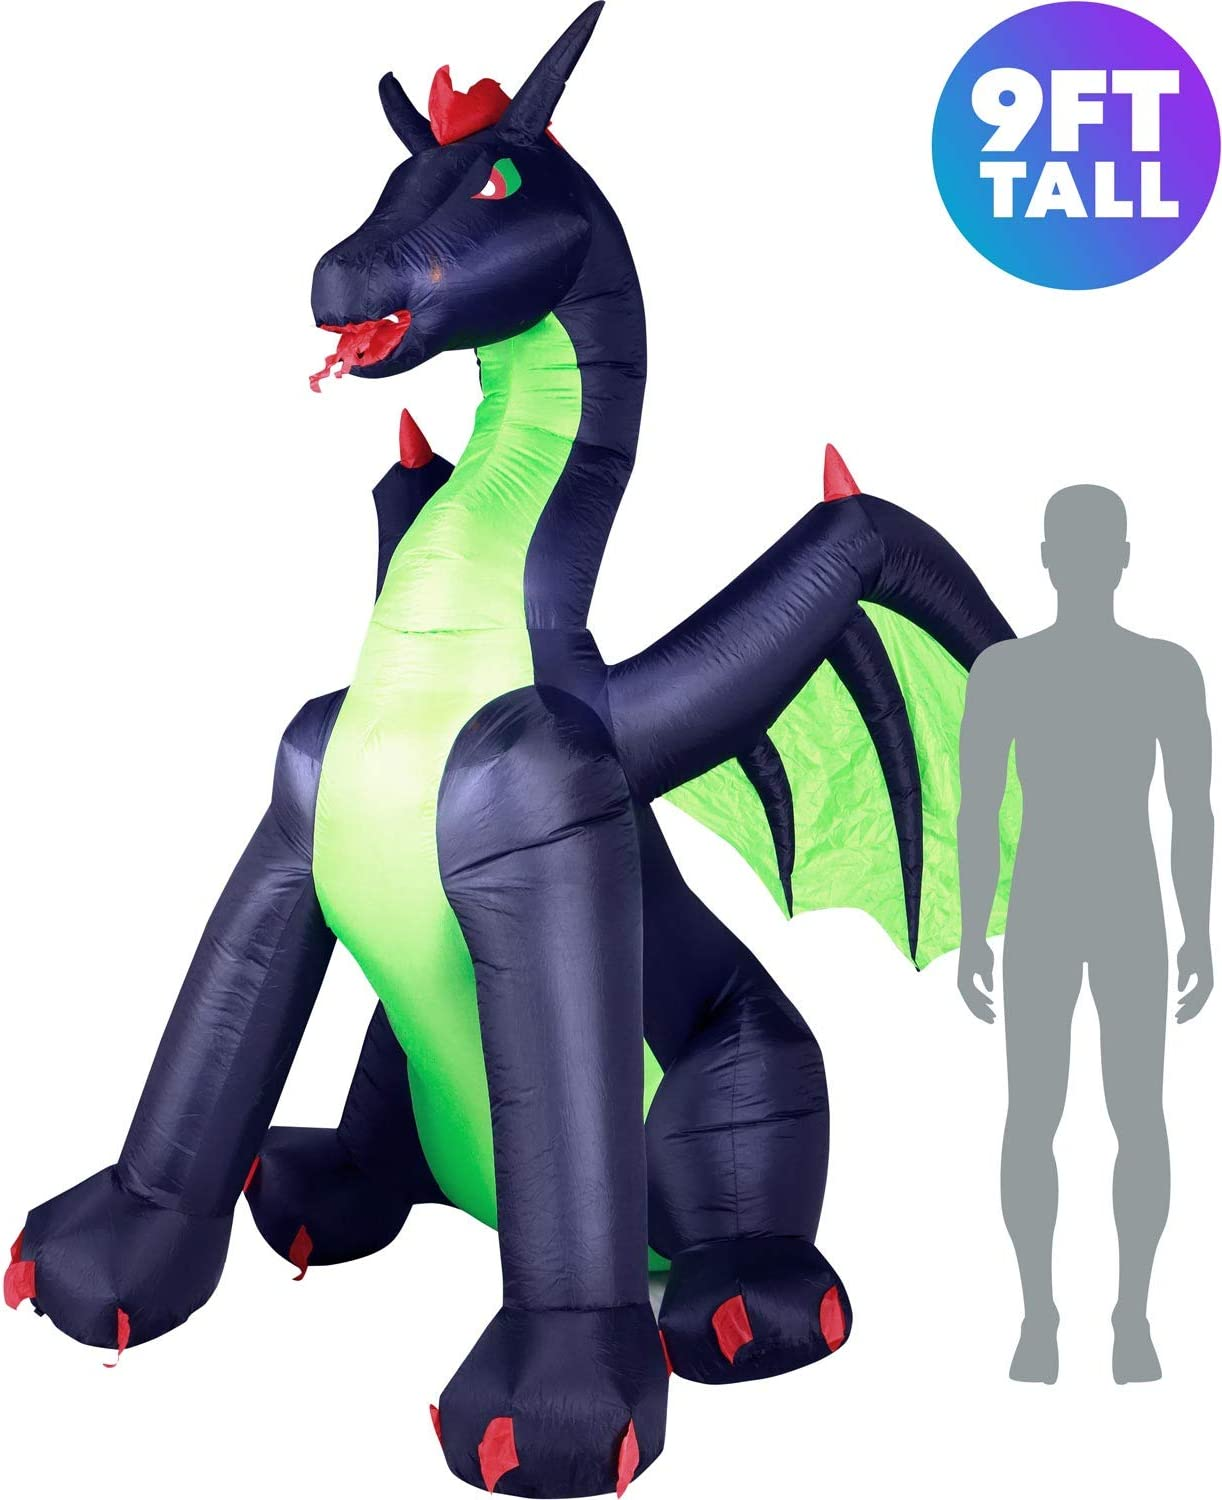 Holidayana Halloween Dragon Inflatable Decor 9 ft Halloween Dragon Inflatable Yard Decoration with Super Bright Internal Lights Built in Fan and